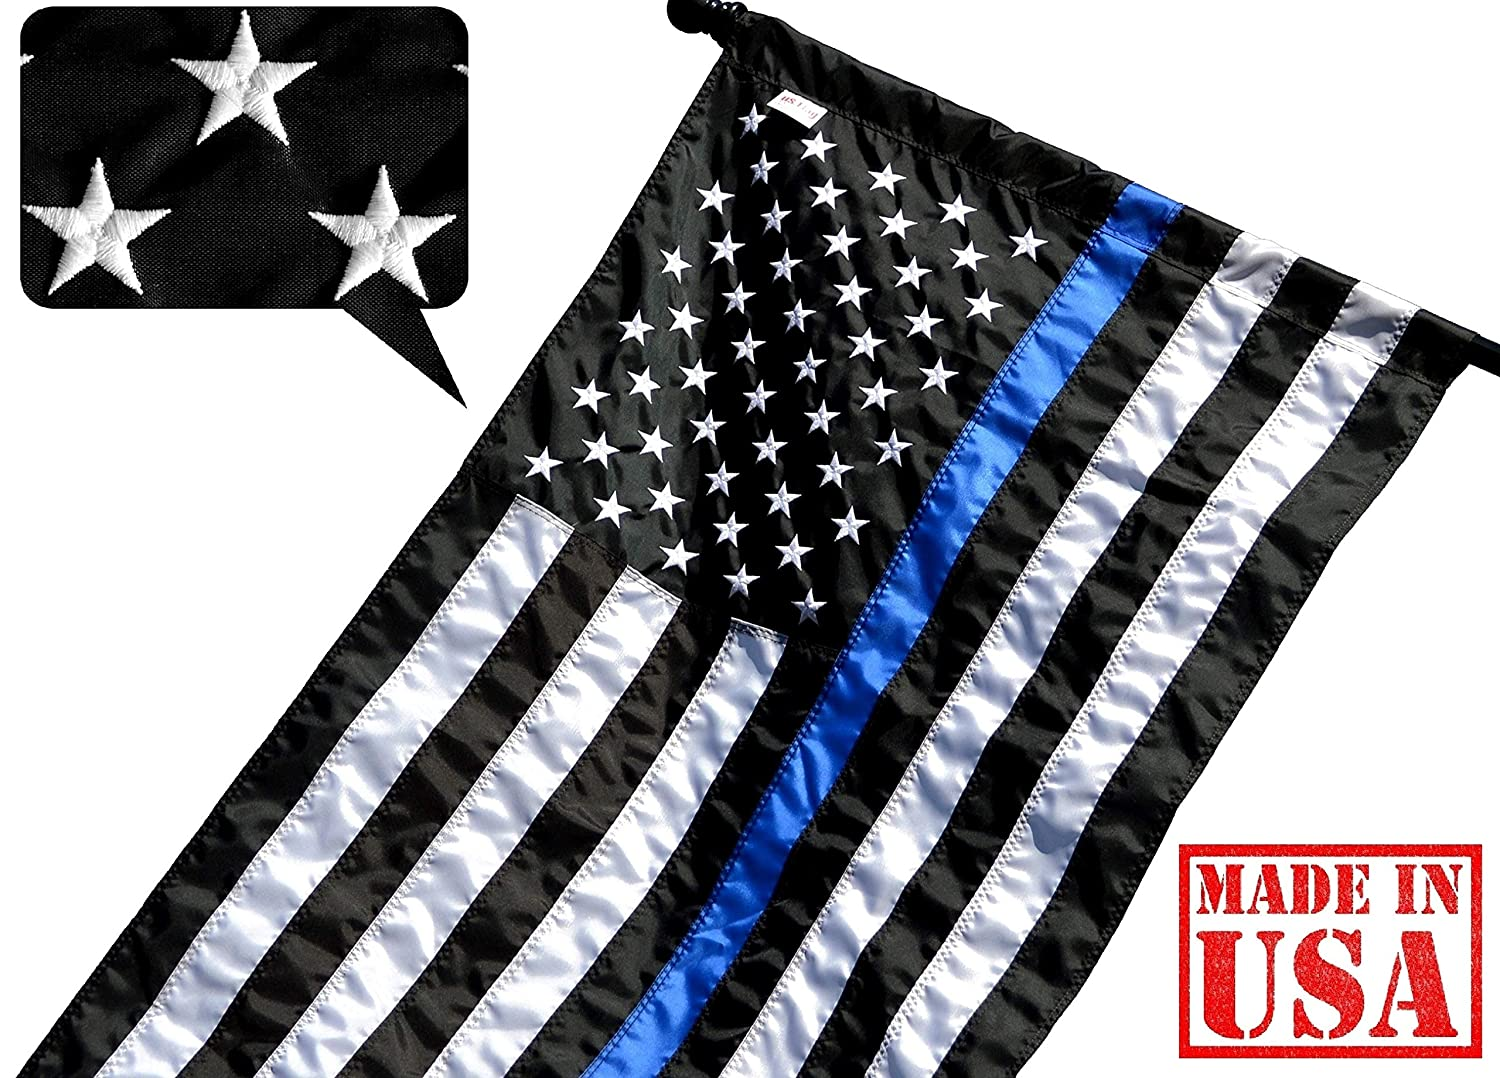 d6f6c51938fd US Flag Factory - Thin Blue Line American Flag (Pole Sleeve) (Embroidered  Stars